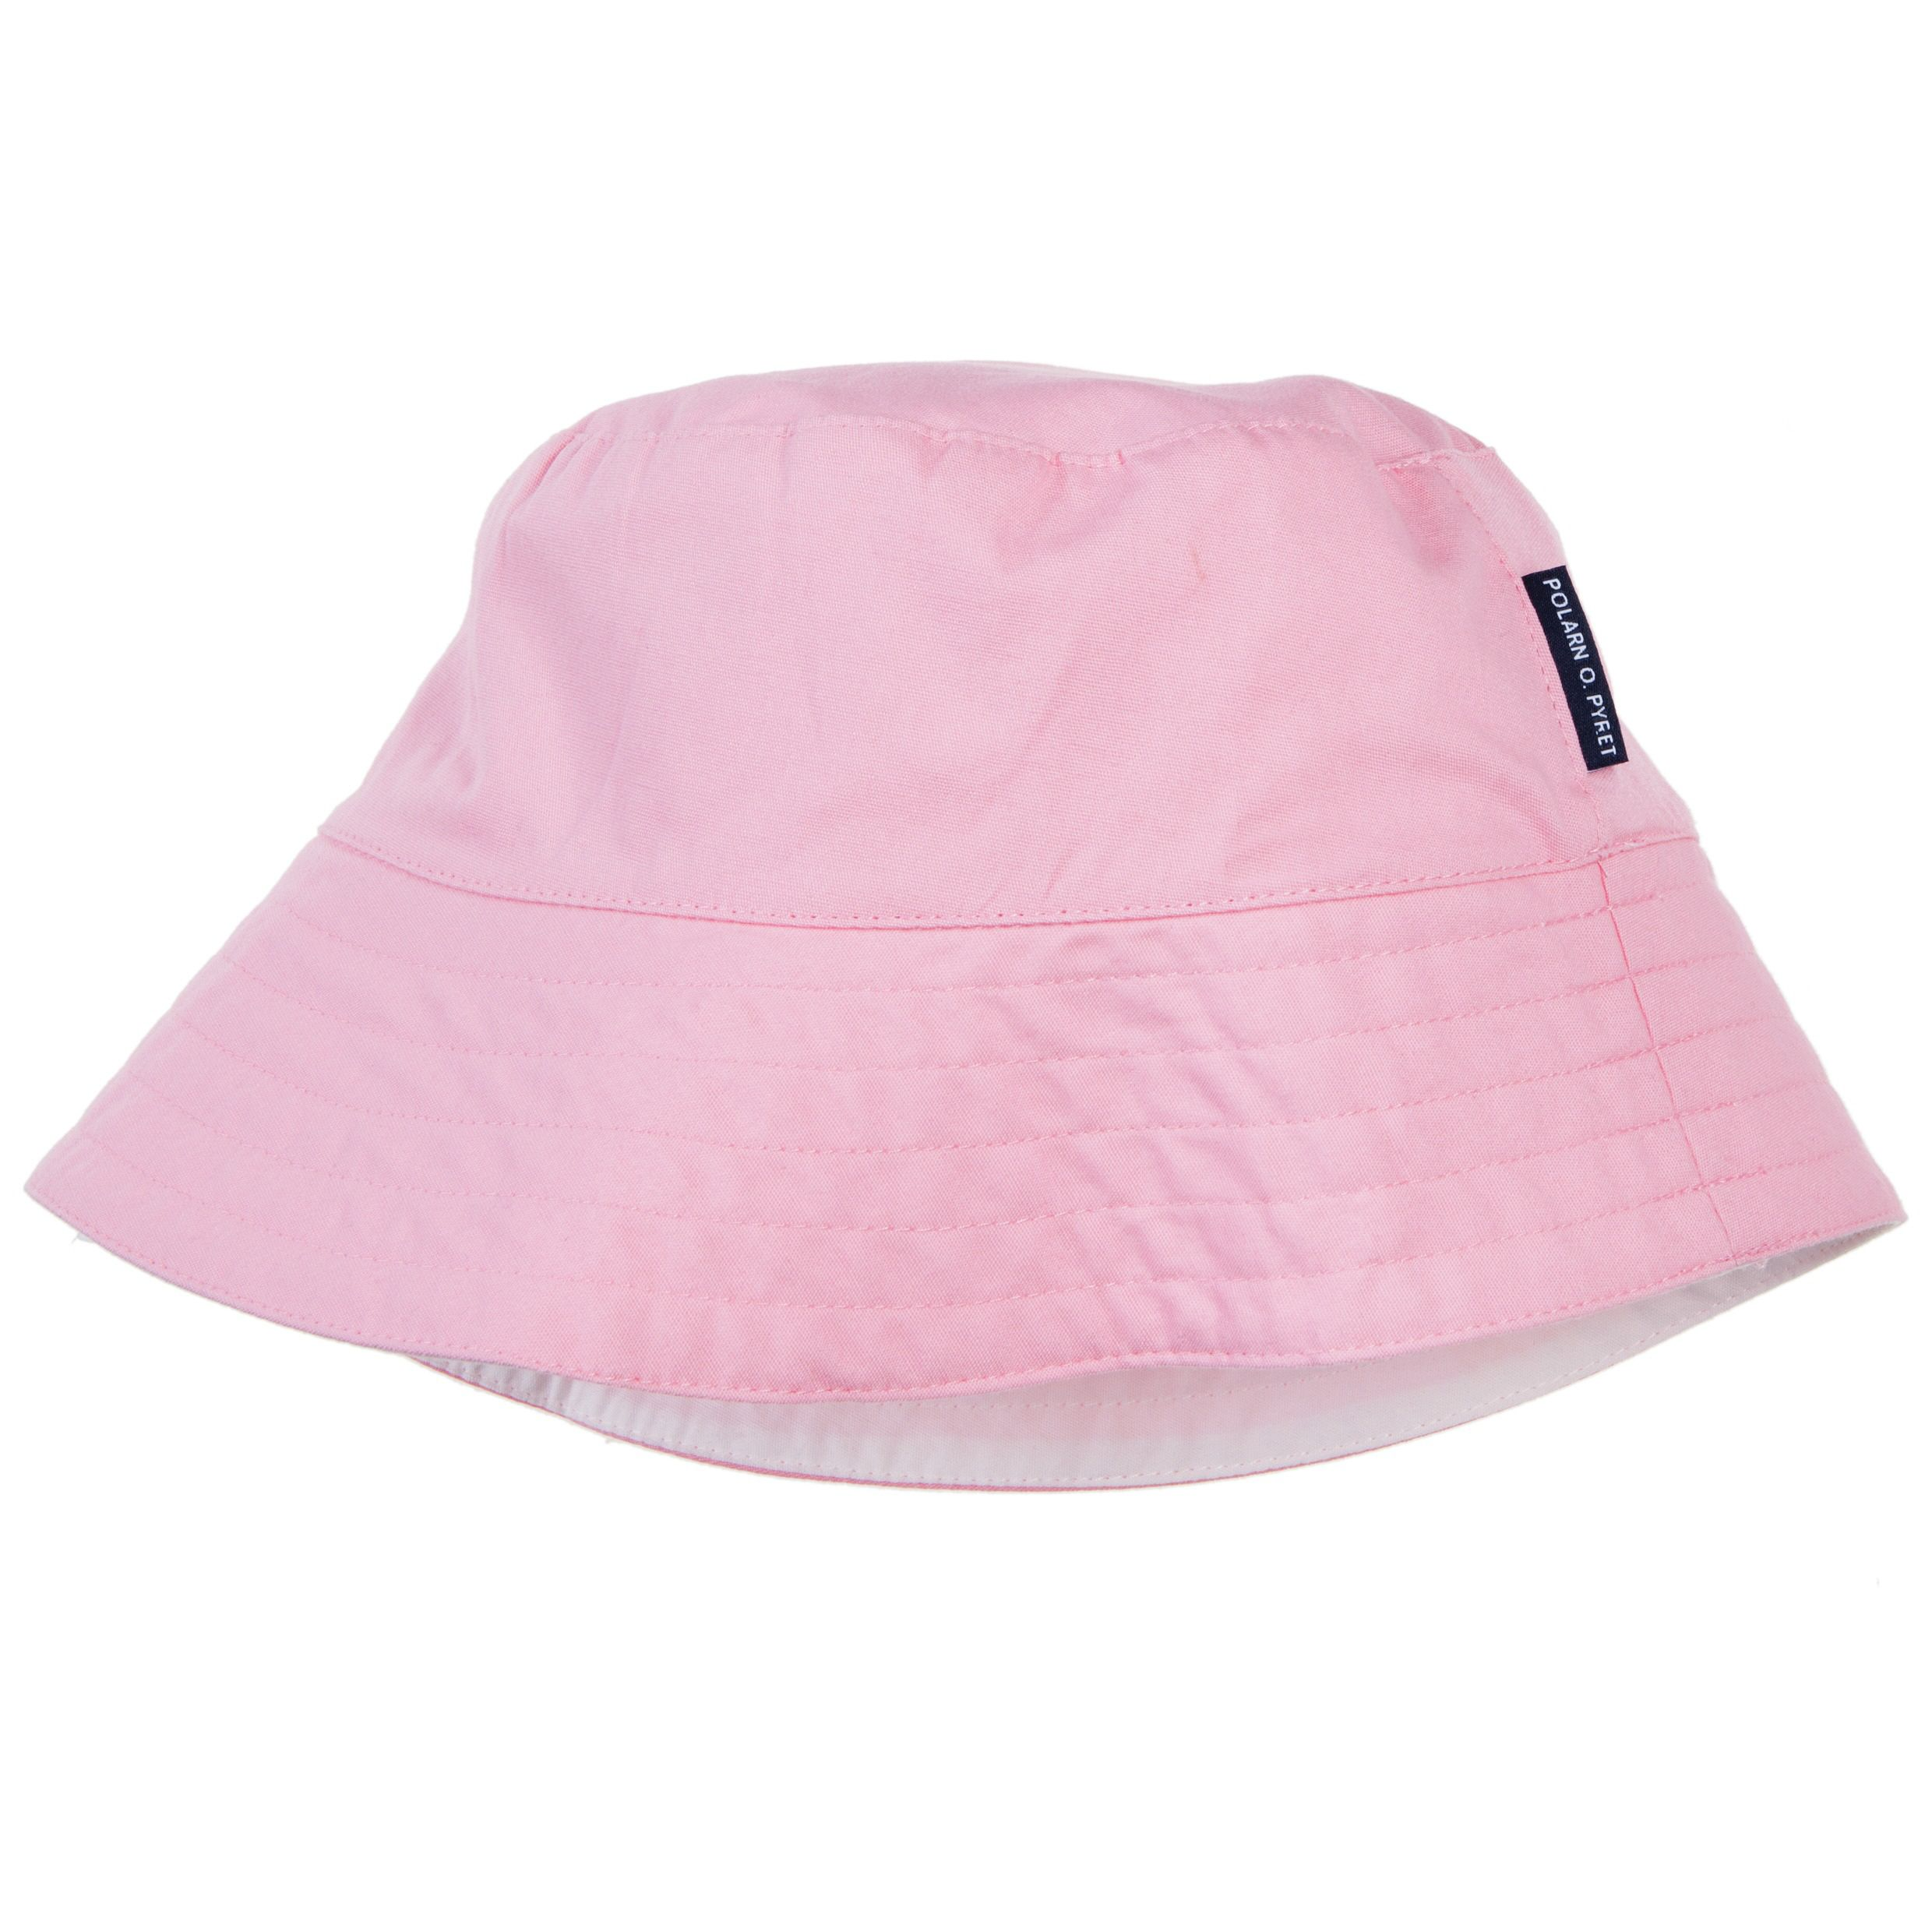 Kids reversible sunhat